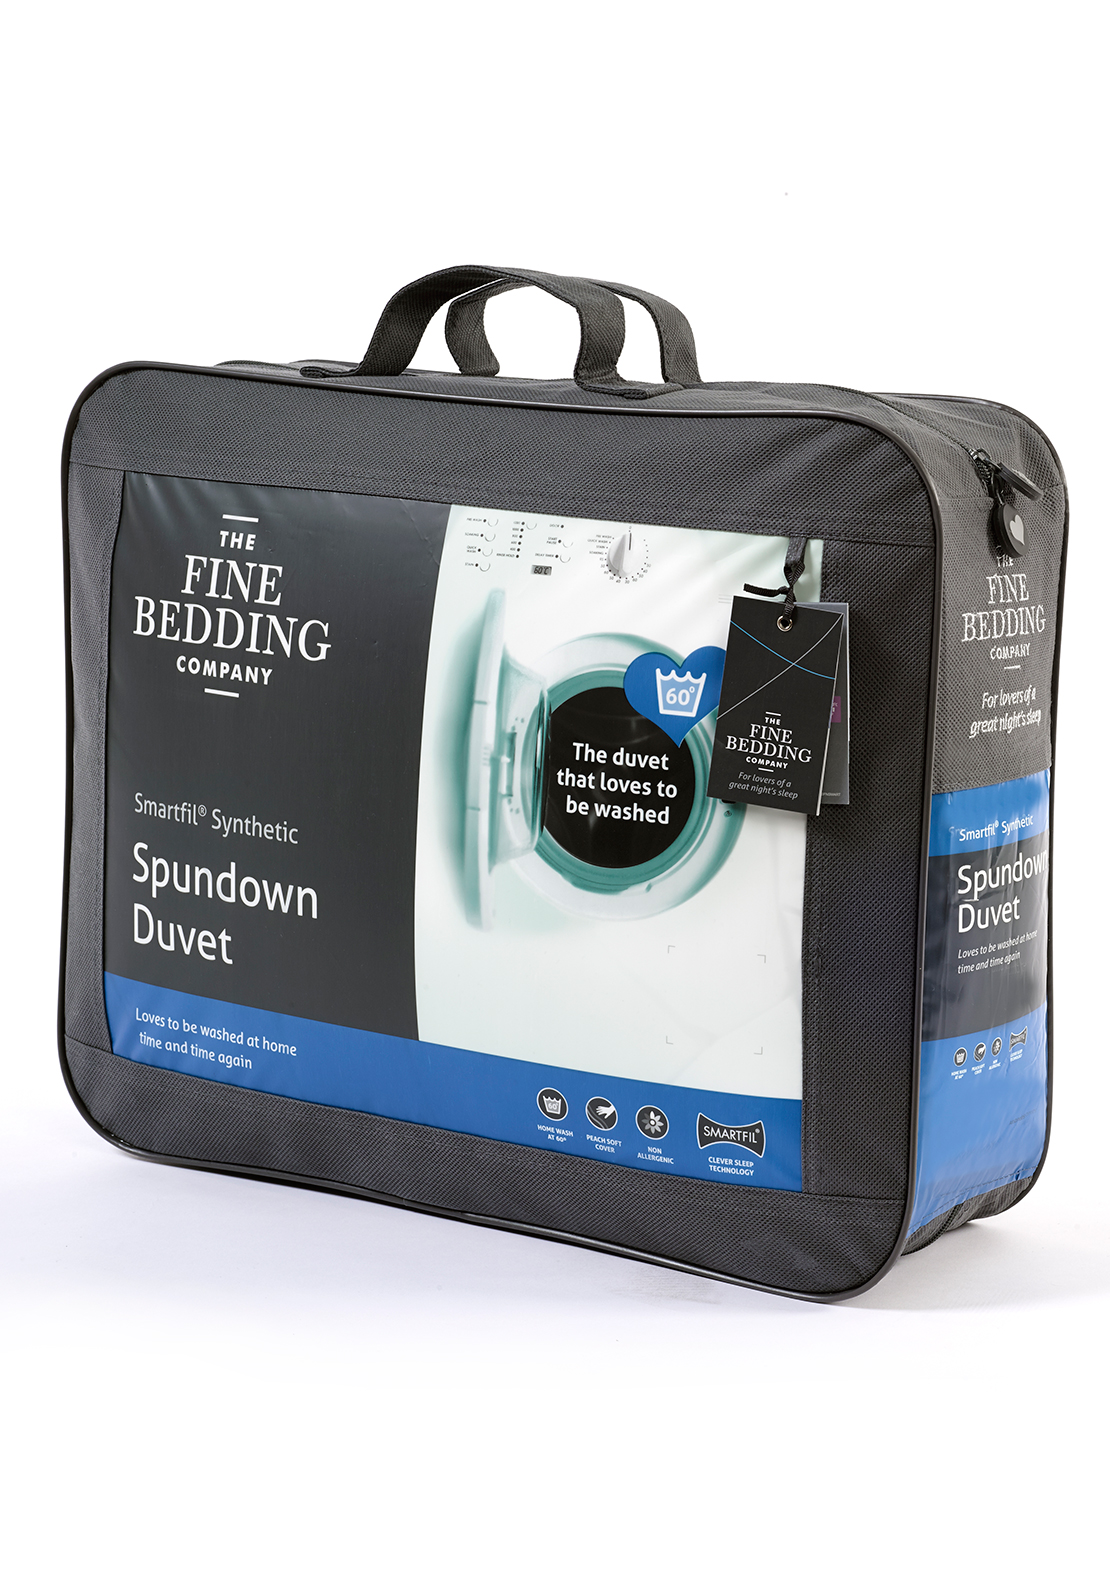 The Fine Bedding Company Spundown Duvet 10.5 Tog